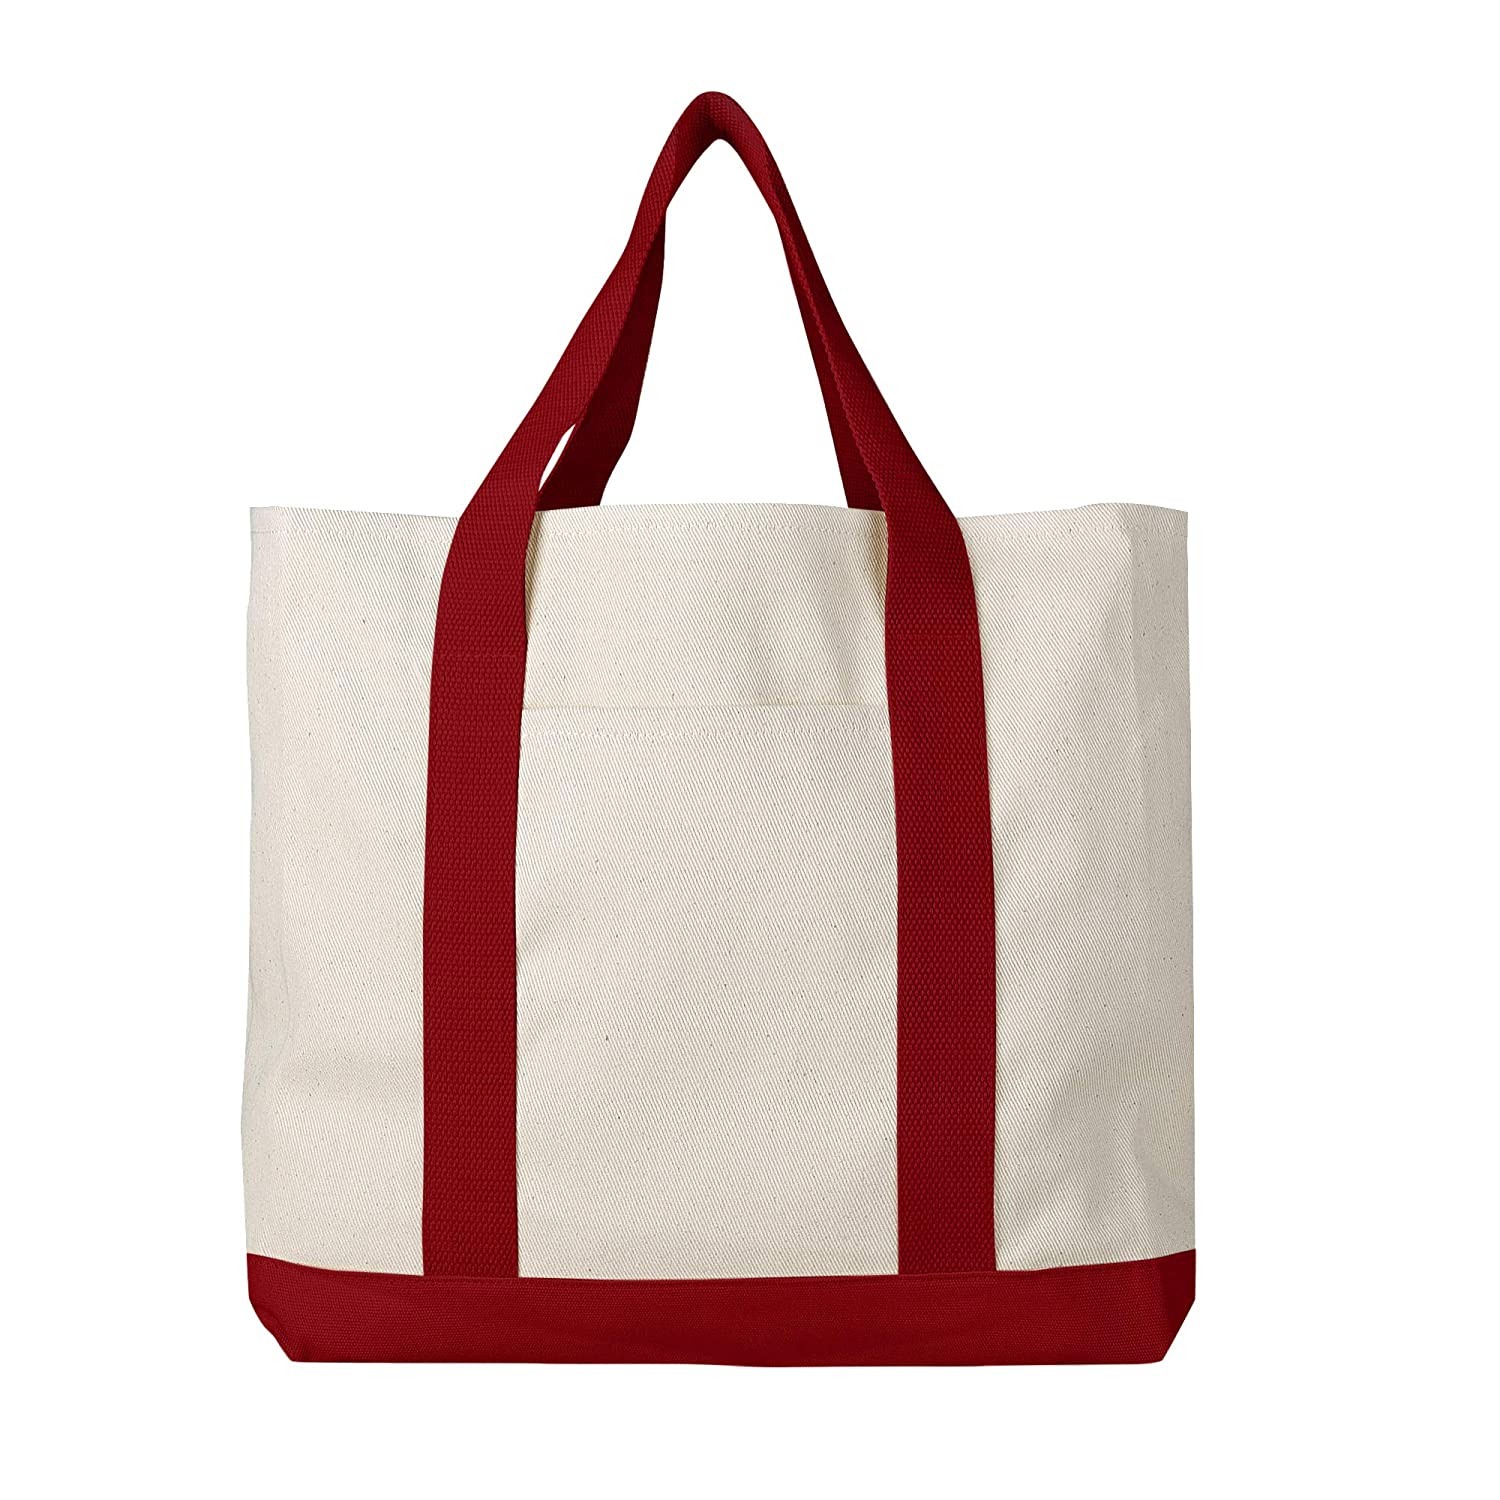 334351be6a02 Pack of 3 - Heavy Duty Cotton Canvas Twill Travel Tote Bags Large Thick  Reusable Blank Tote Bags - Shopping Grocery Bags Eco Friendly Canvas Bags  in Bulk ...